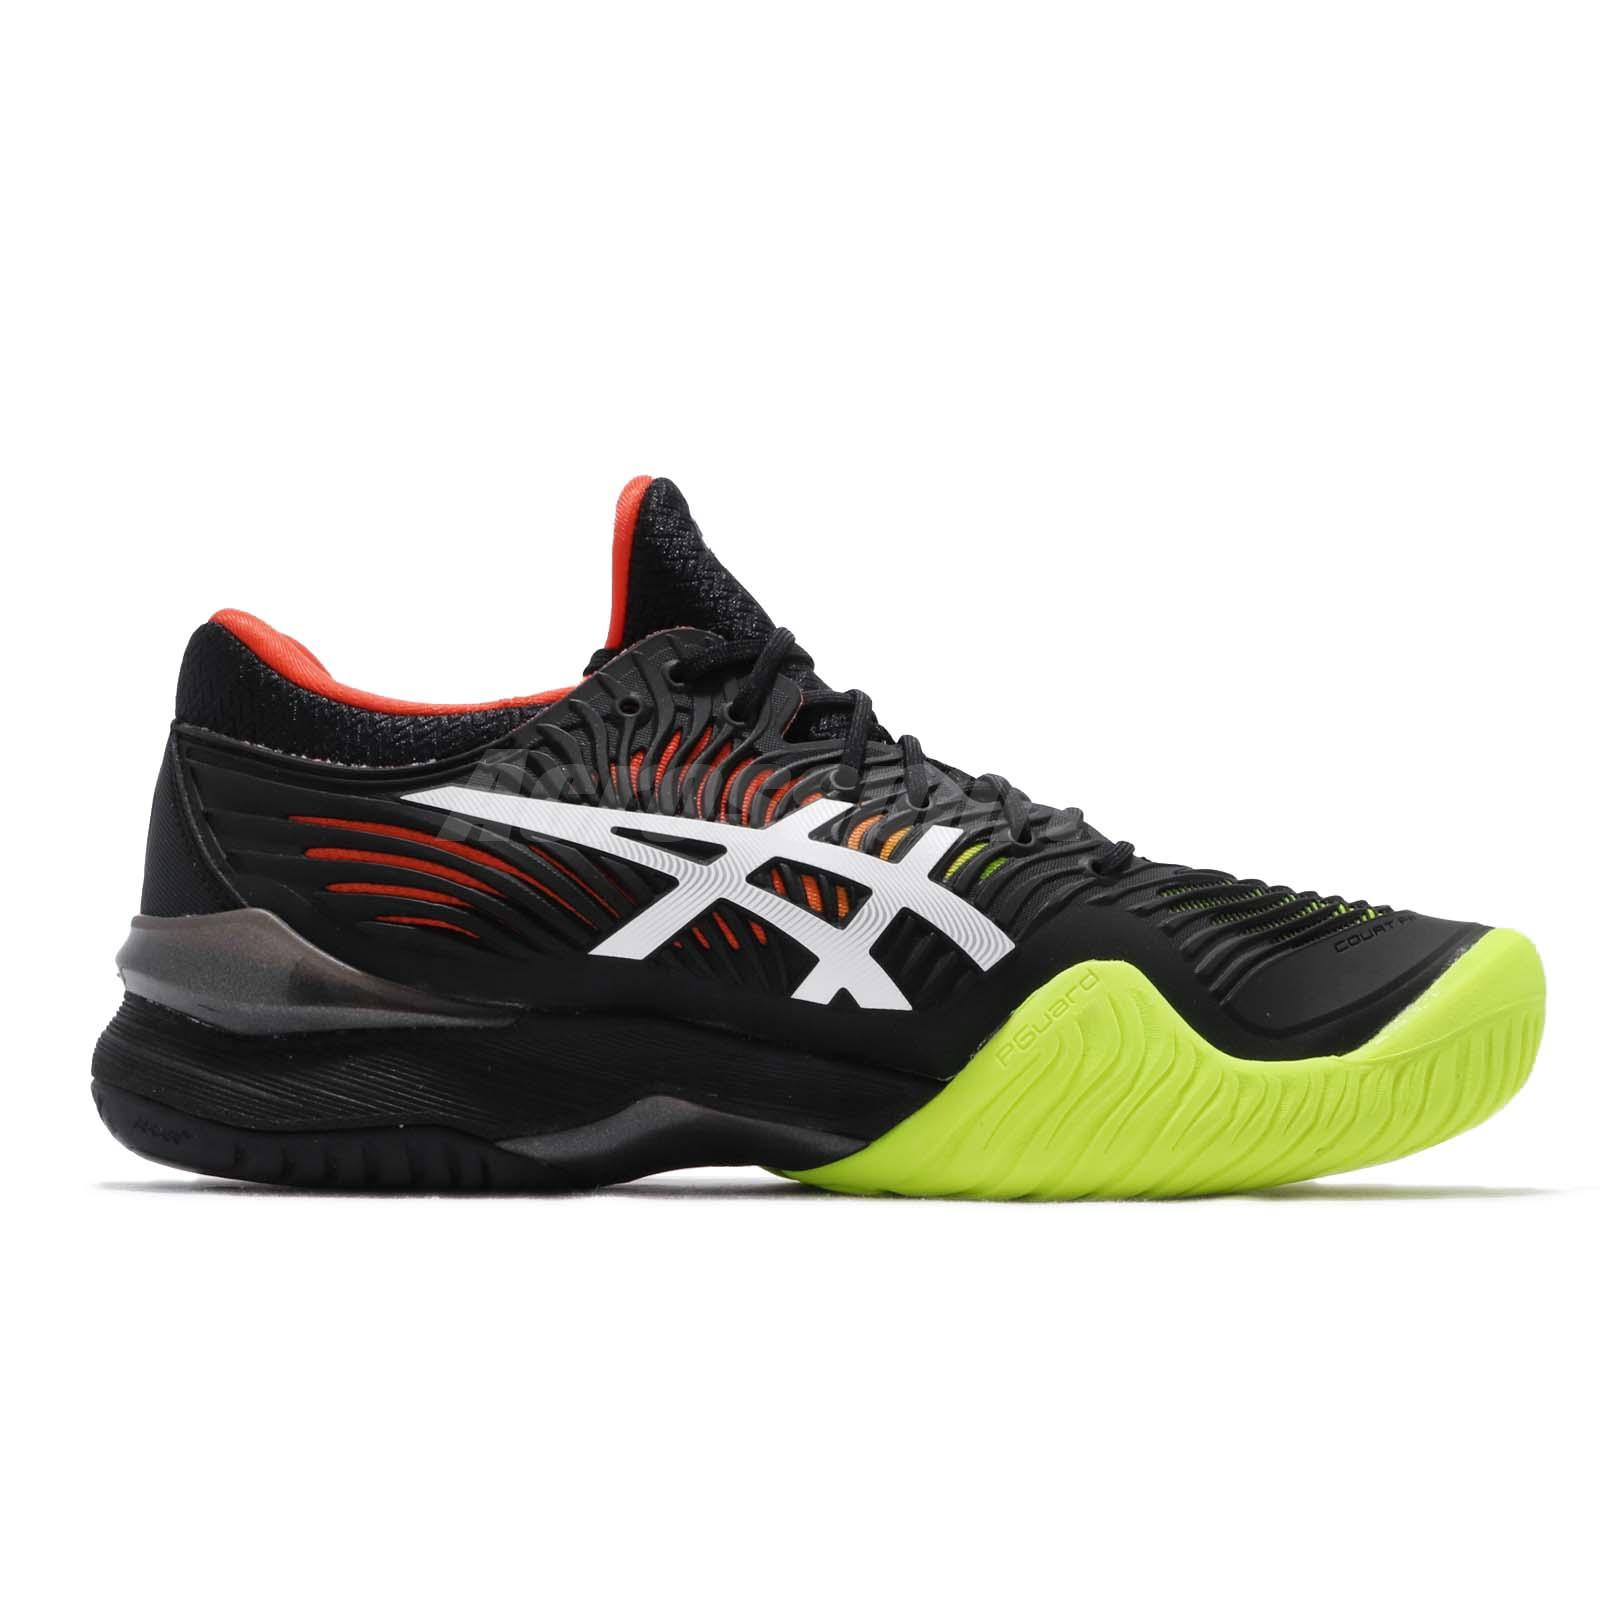 Asics Court FF 2 Black White Orange Volt Men Tennis Shoes Sneakers